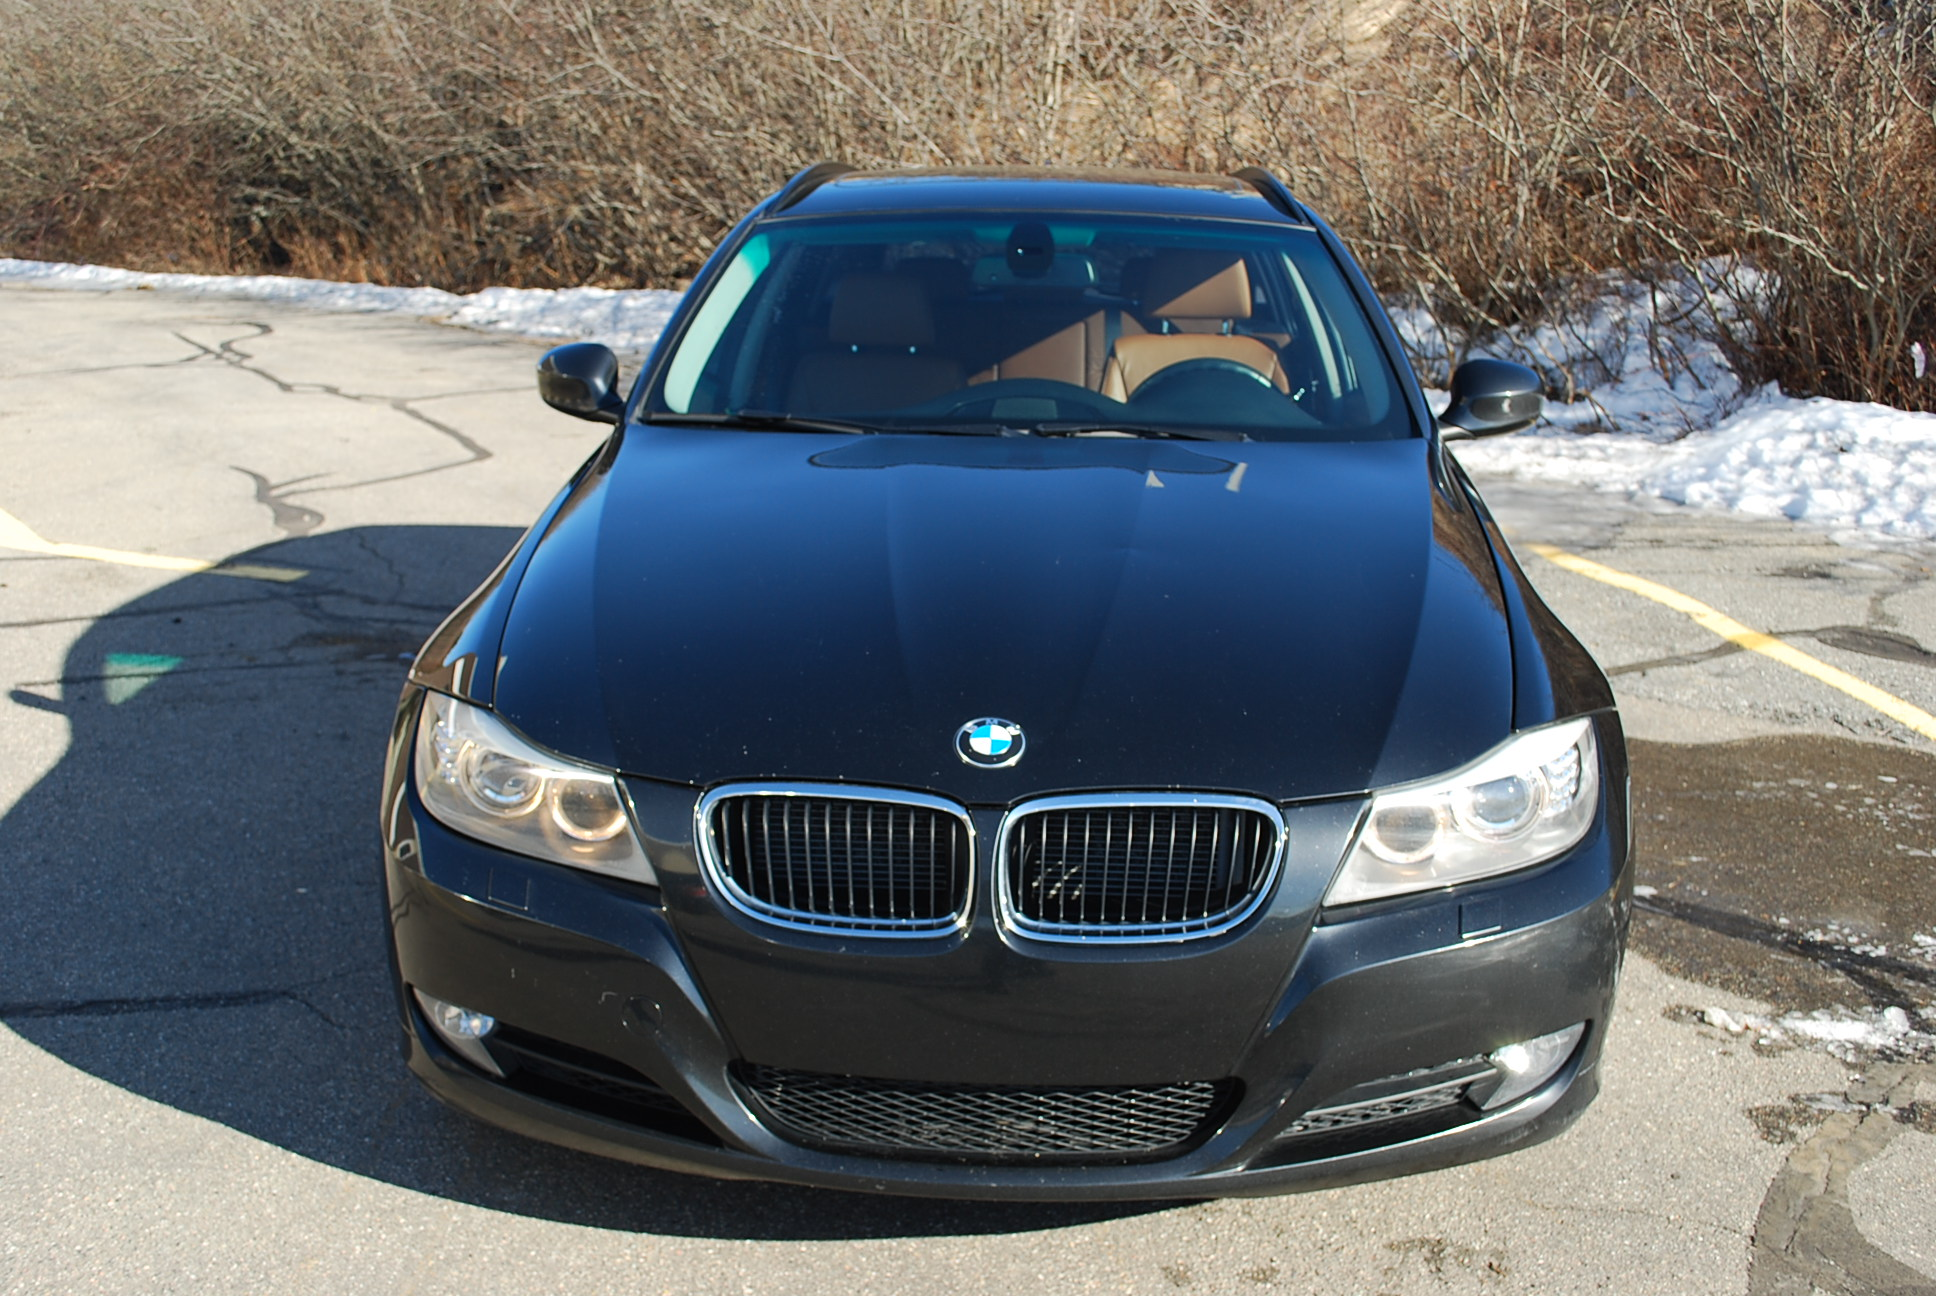 Used 2011 Bmw 328i Xdrive Touring For Sale In Saint John  Nb